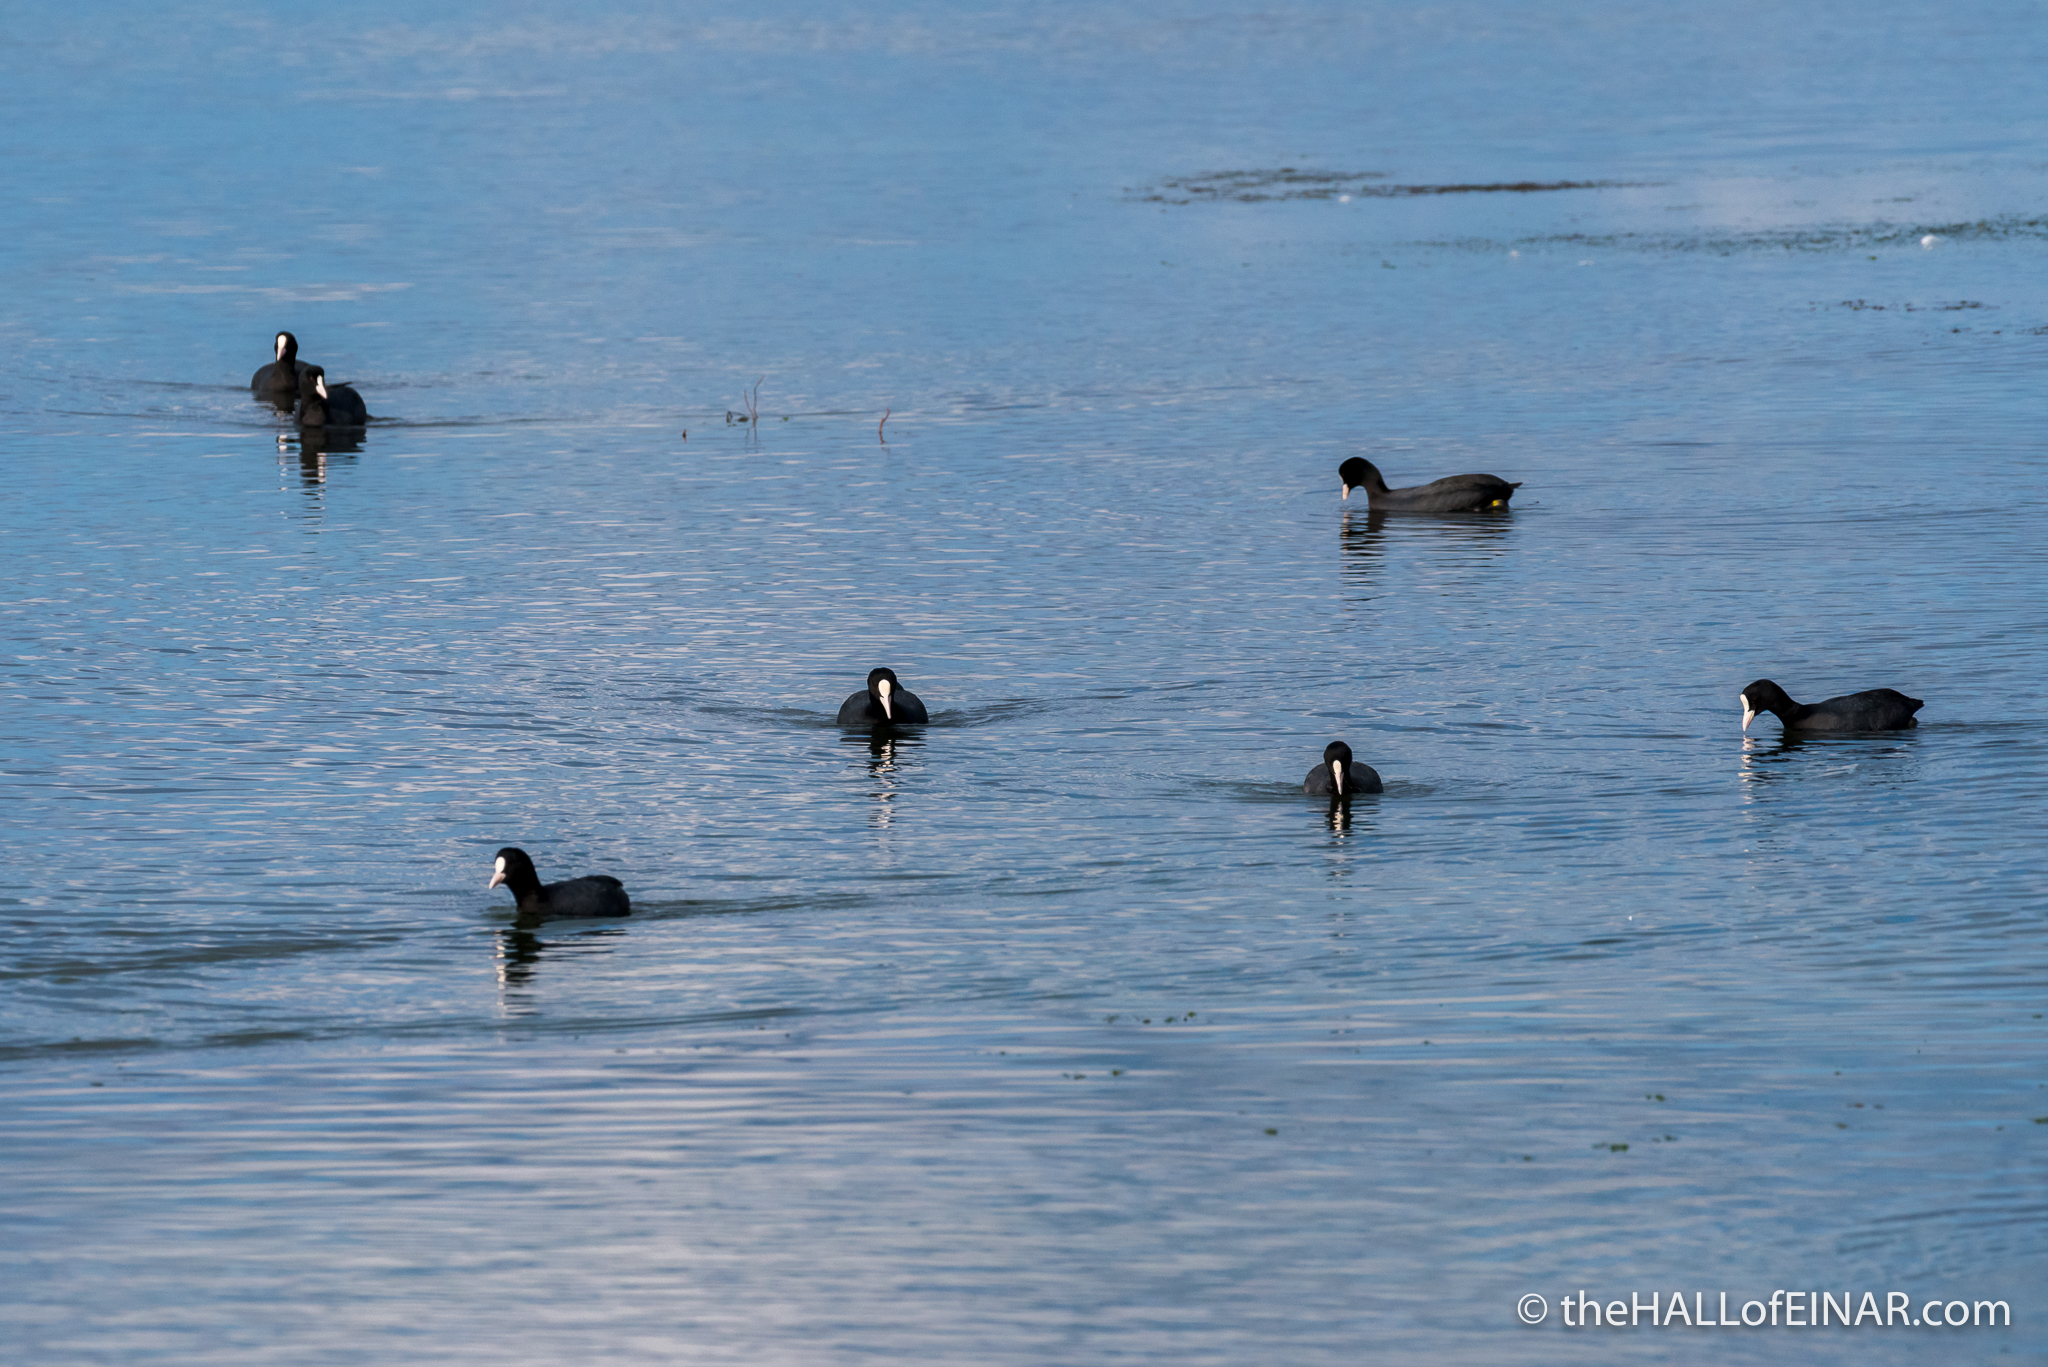 Coots - The Hall of Einar - photograph (c) David Bailey (not the)